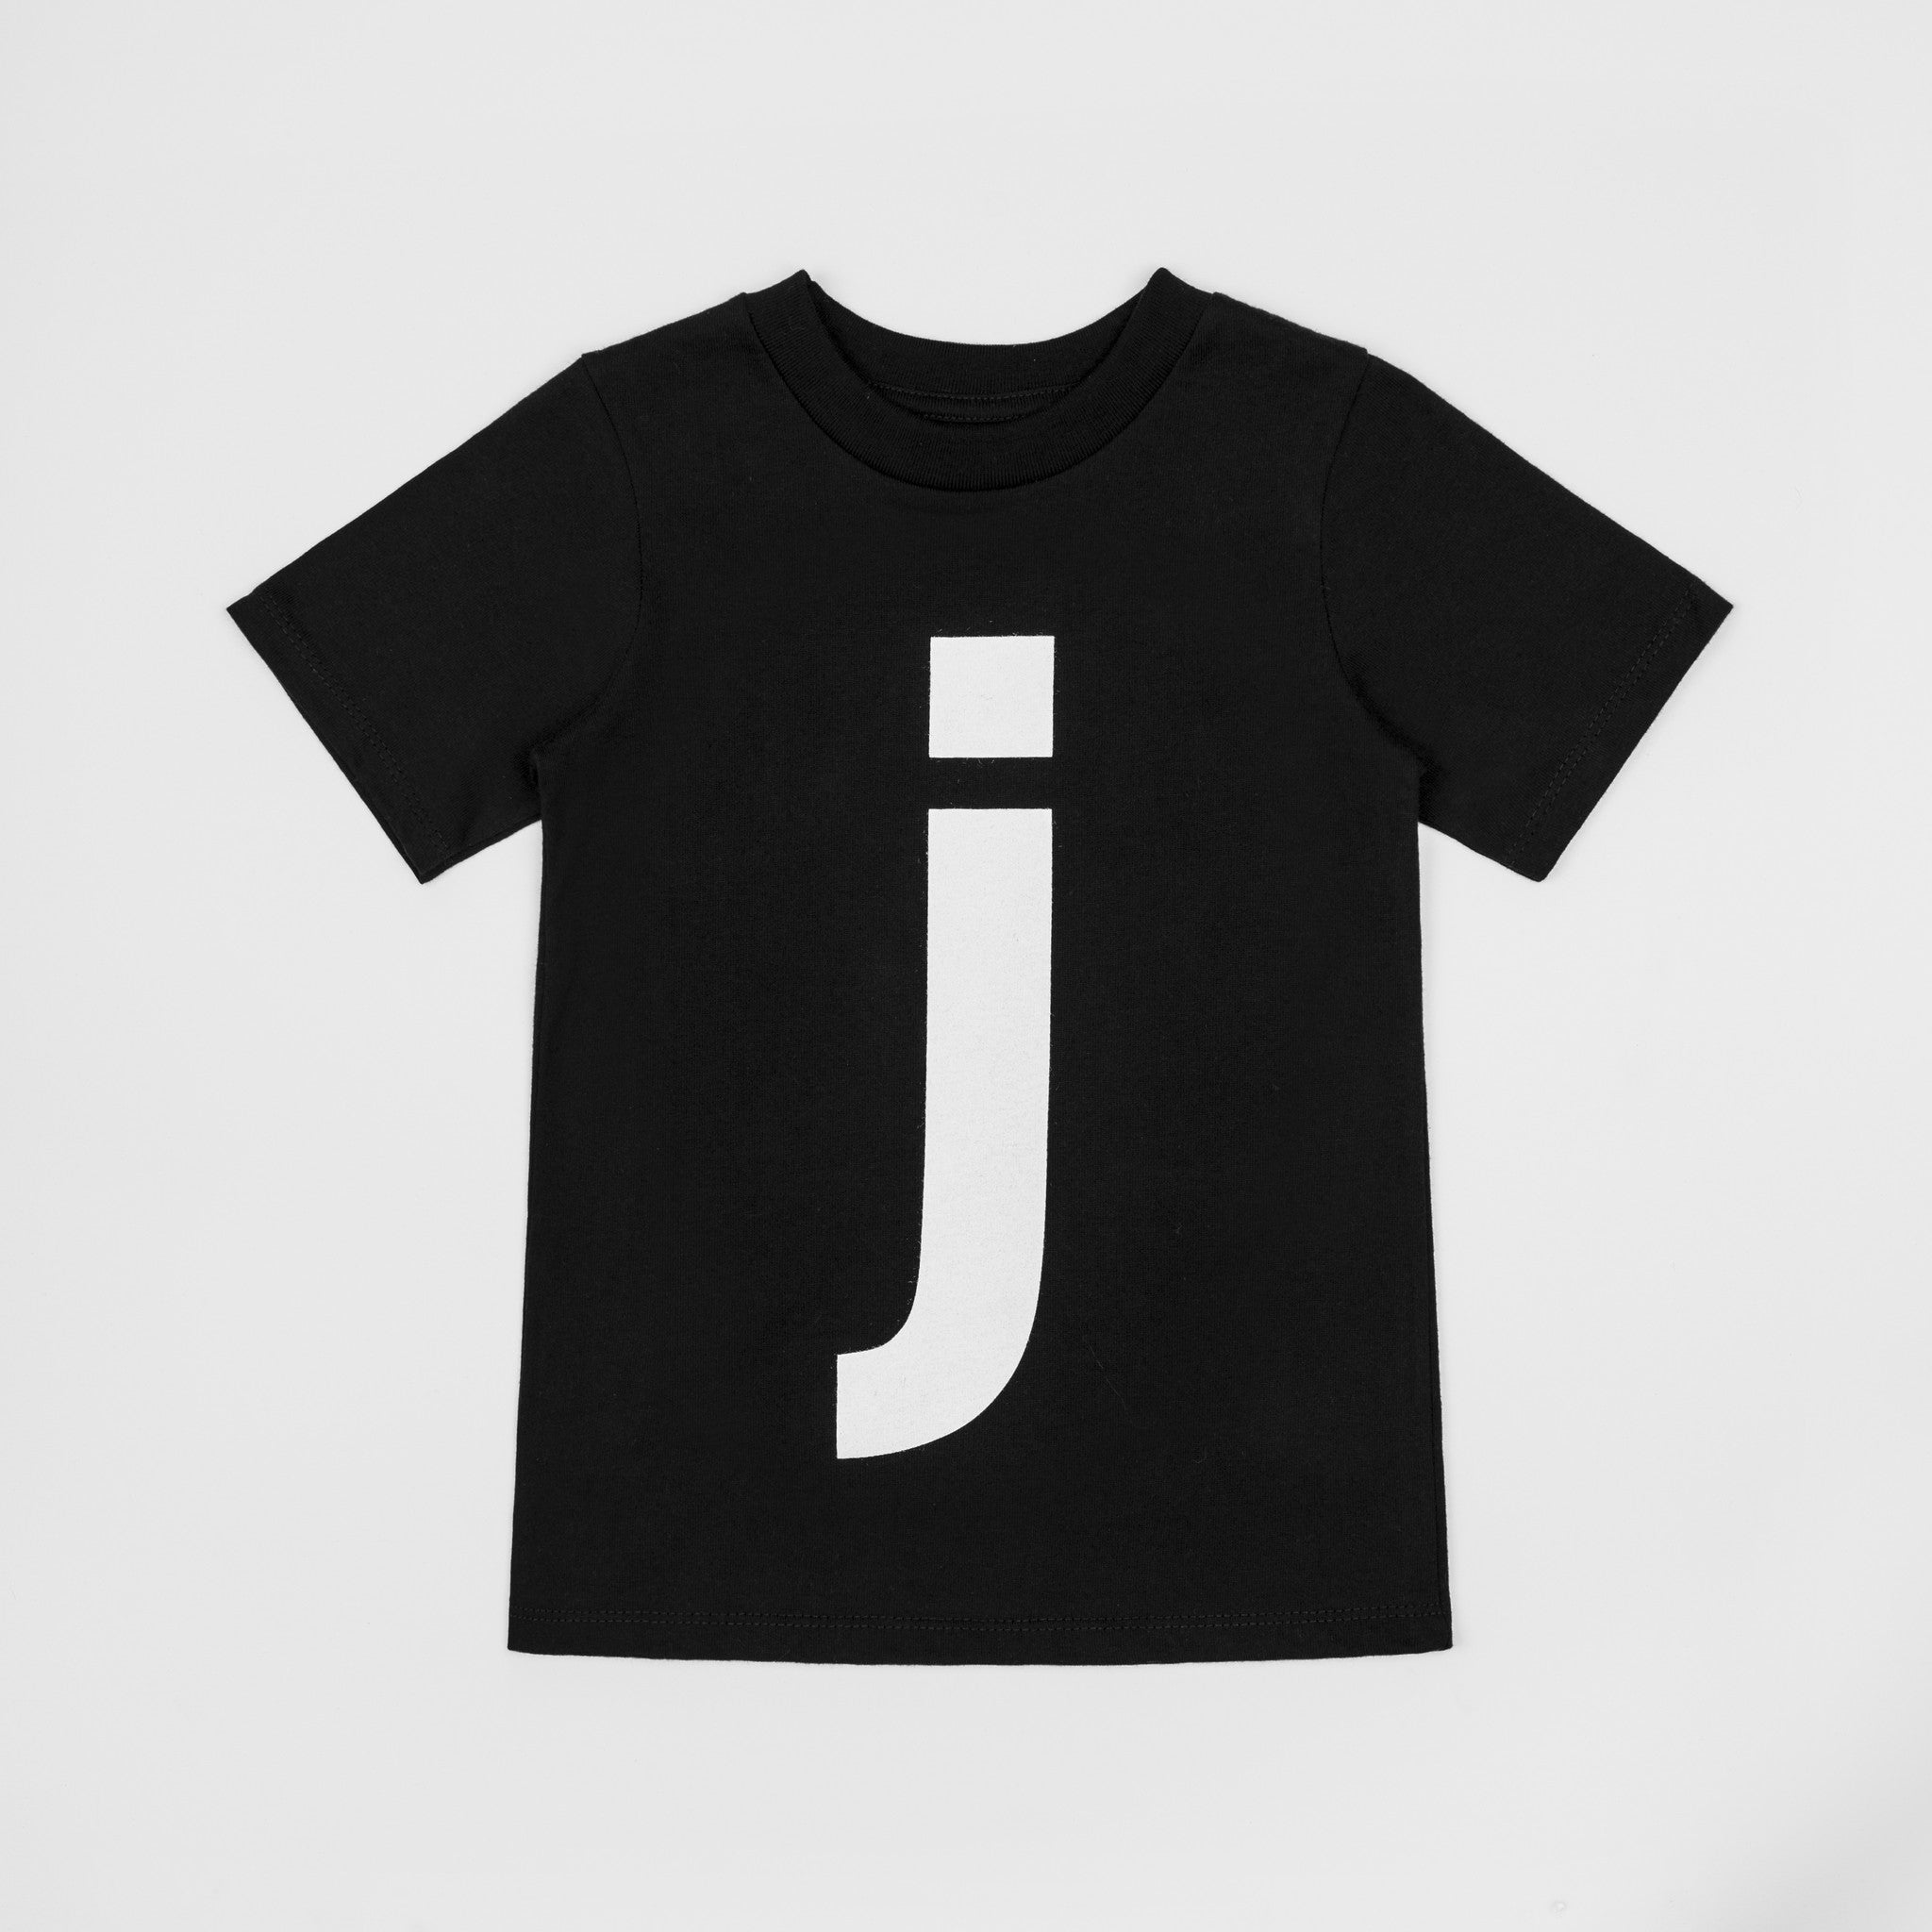 Letter J Black T Shirt With White Print Numbers And Letters